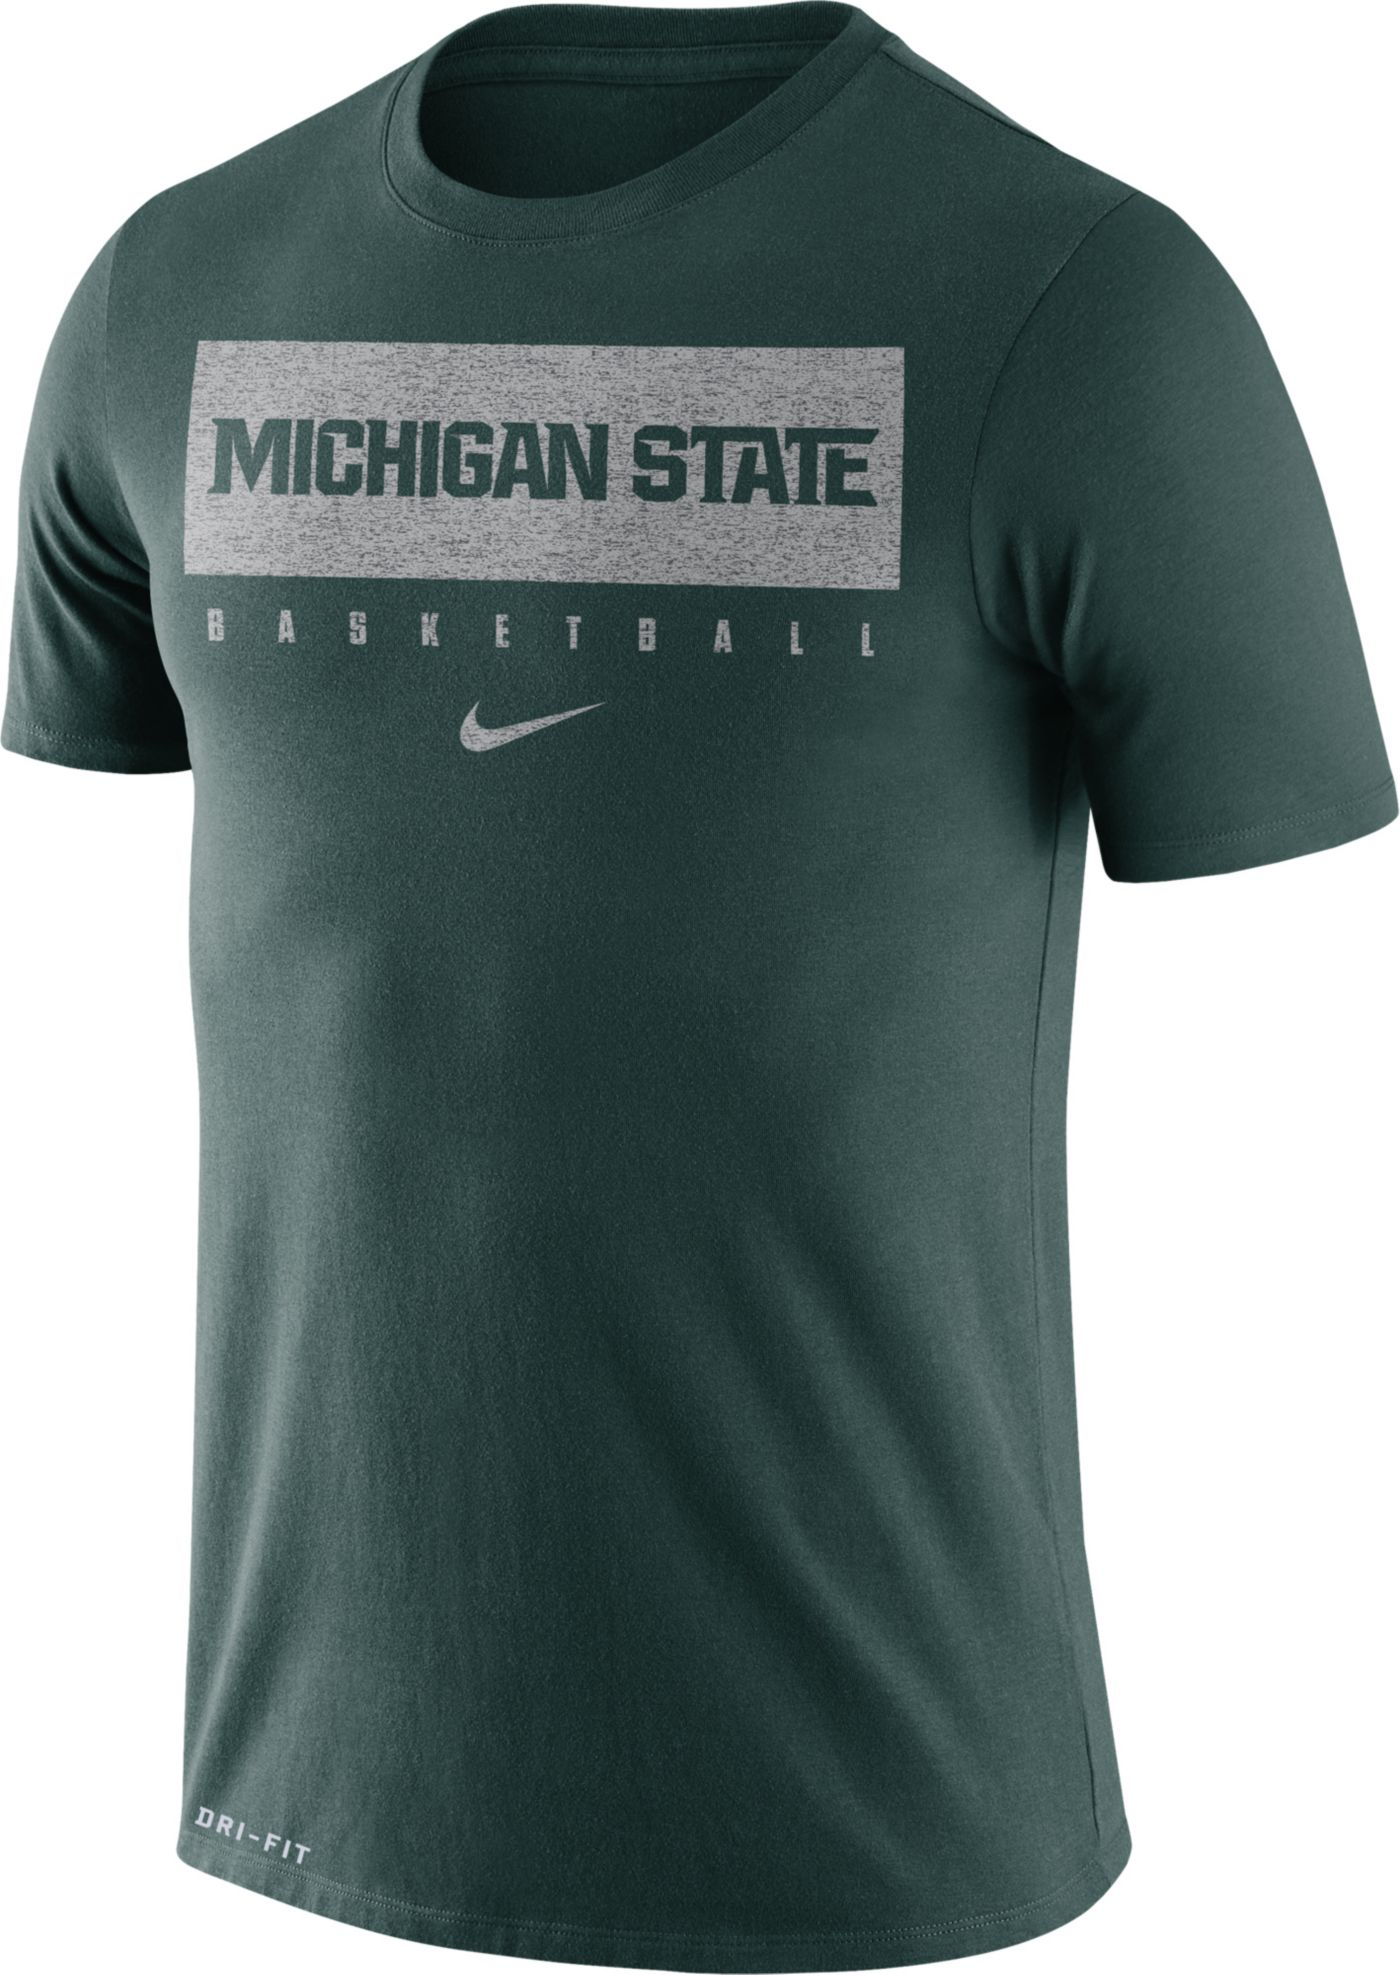 Nike Men's Michigan State Spartans Green Basketball Legend Practice T-Shirt